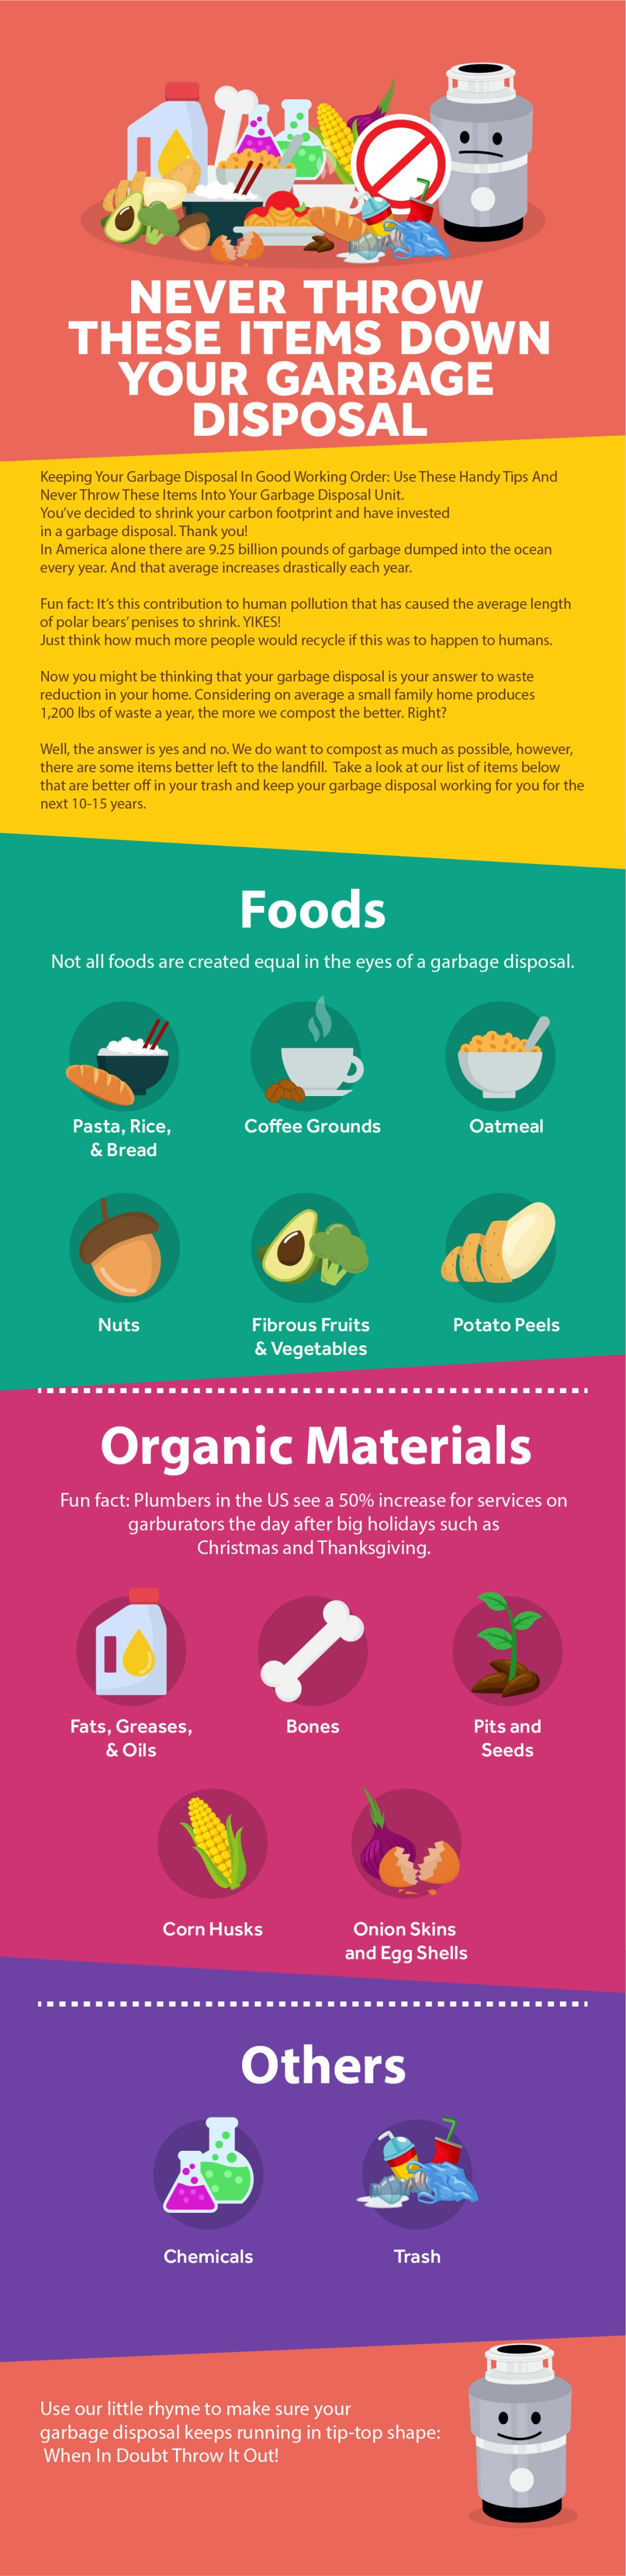 13 Foods You Must Never Throw into a Garbage Disposal Unit - Infographic